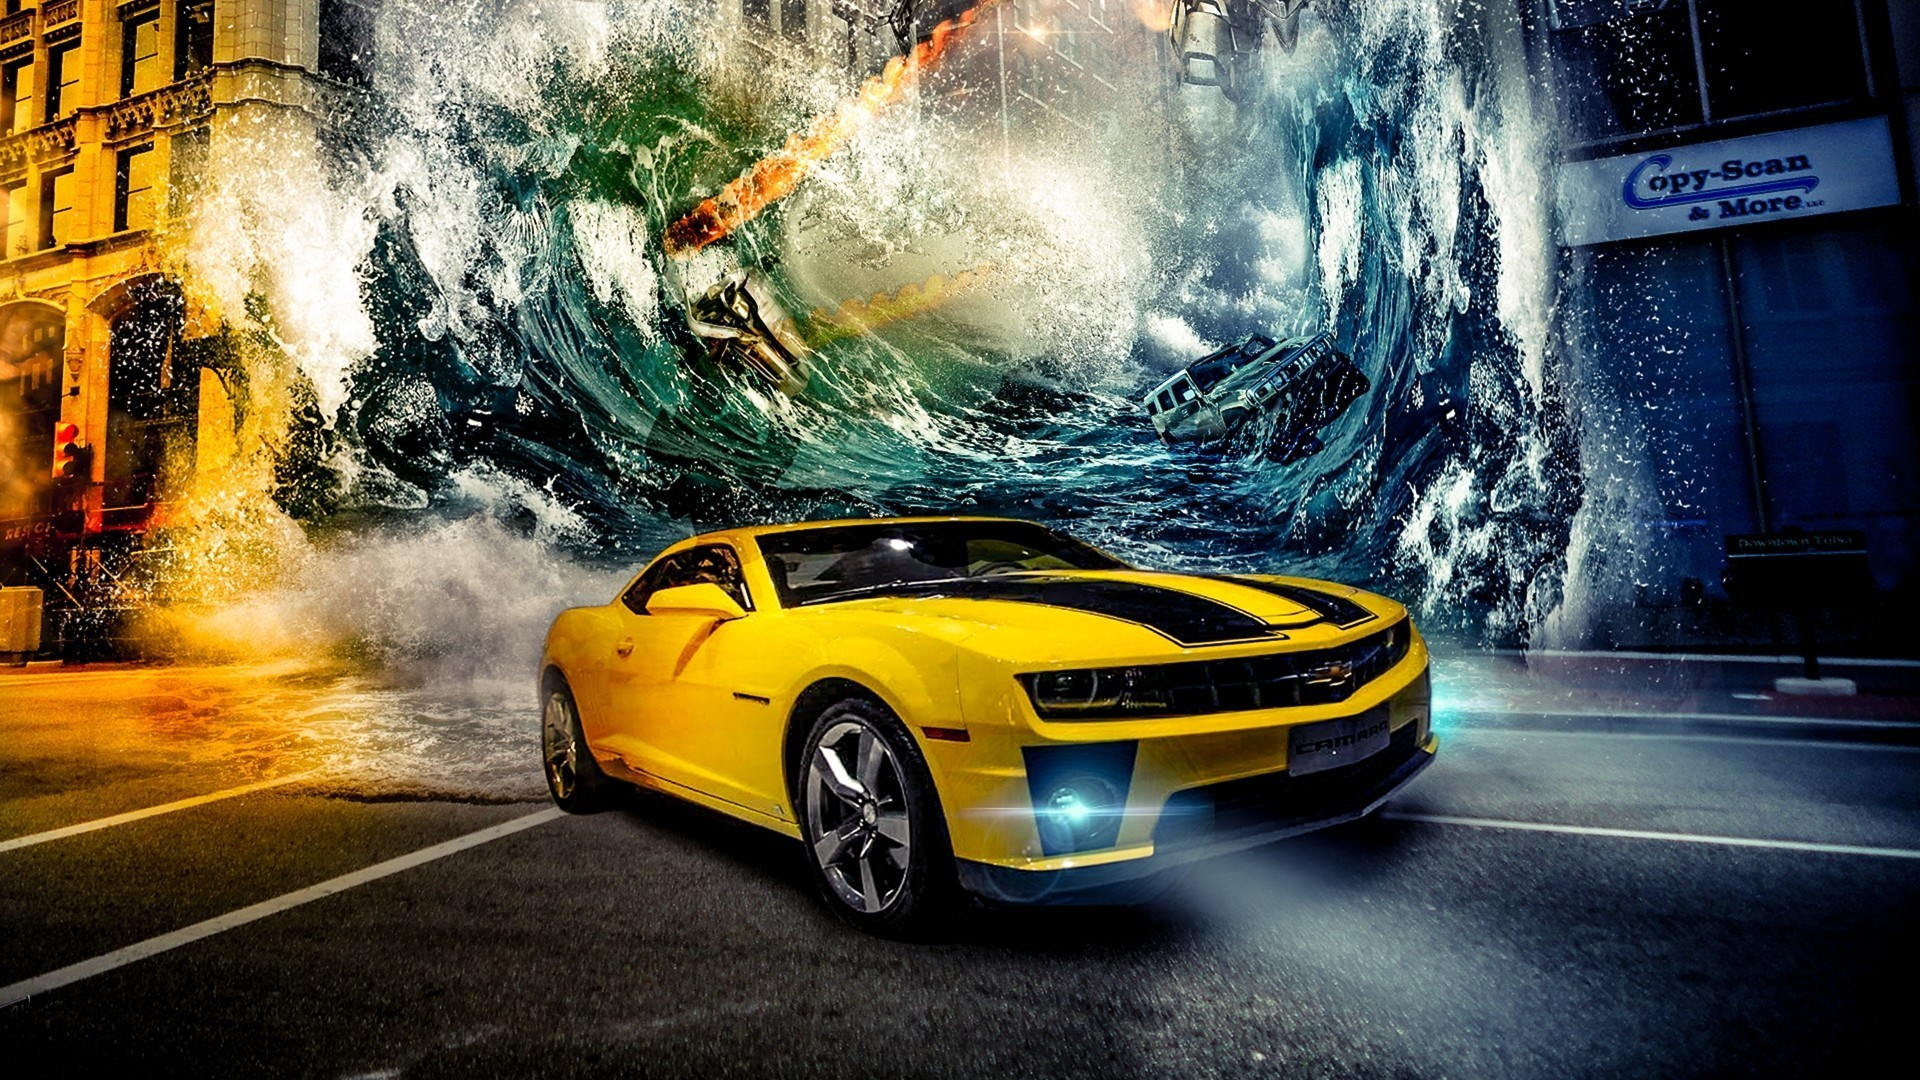 1920x1080 car, Chevrolet Camaro Bumblebee Wallpapers HD / Desktop and Mobile  Backgrounds